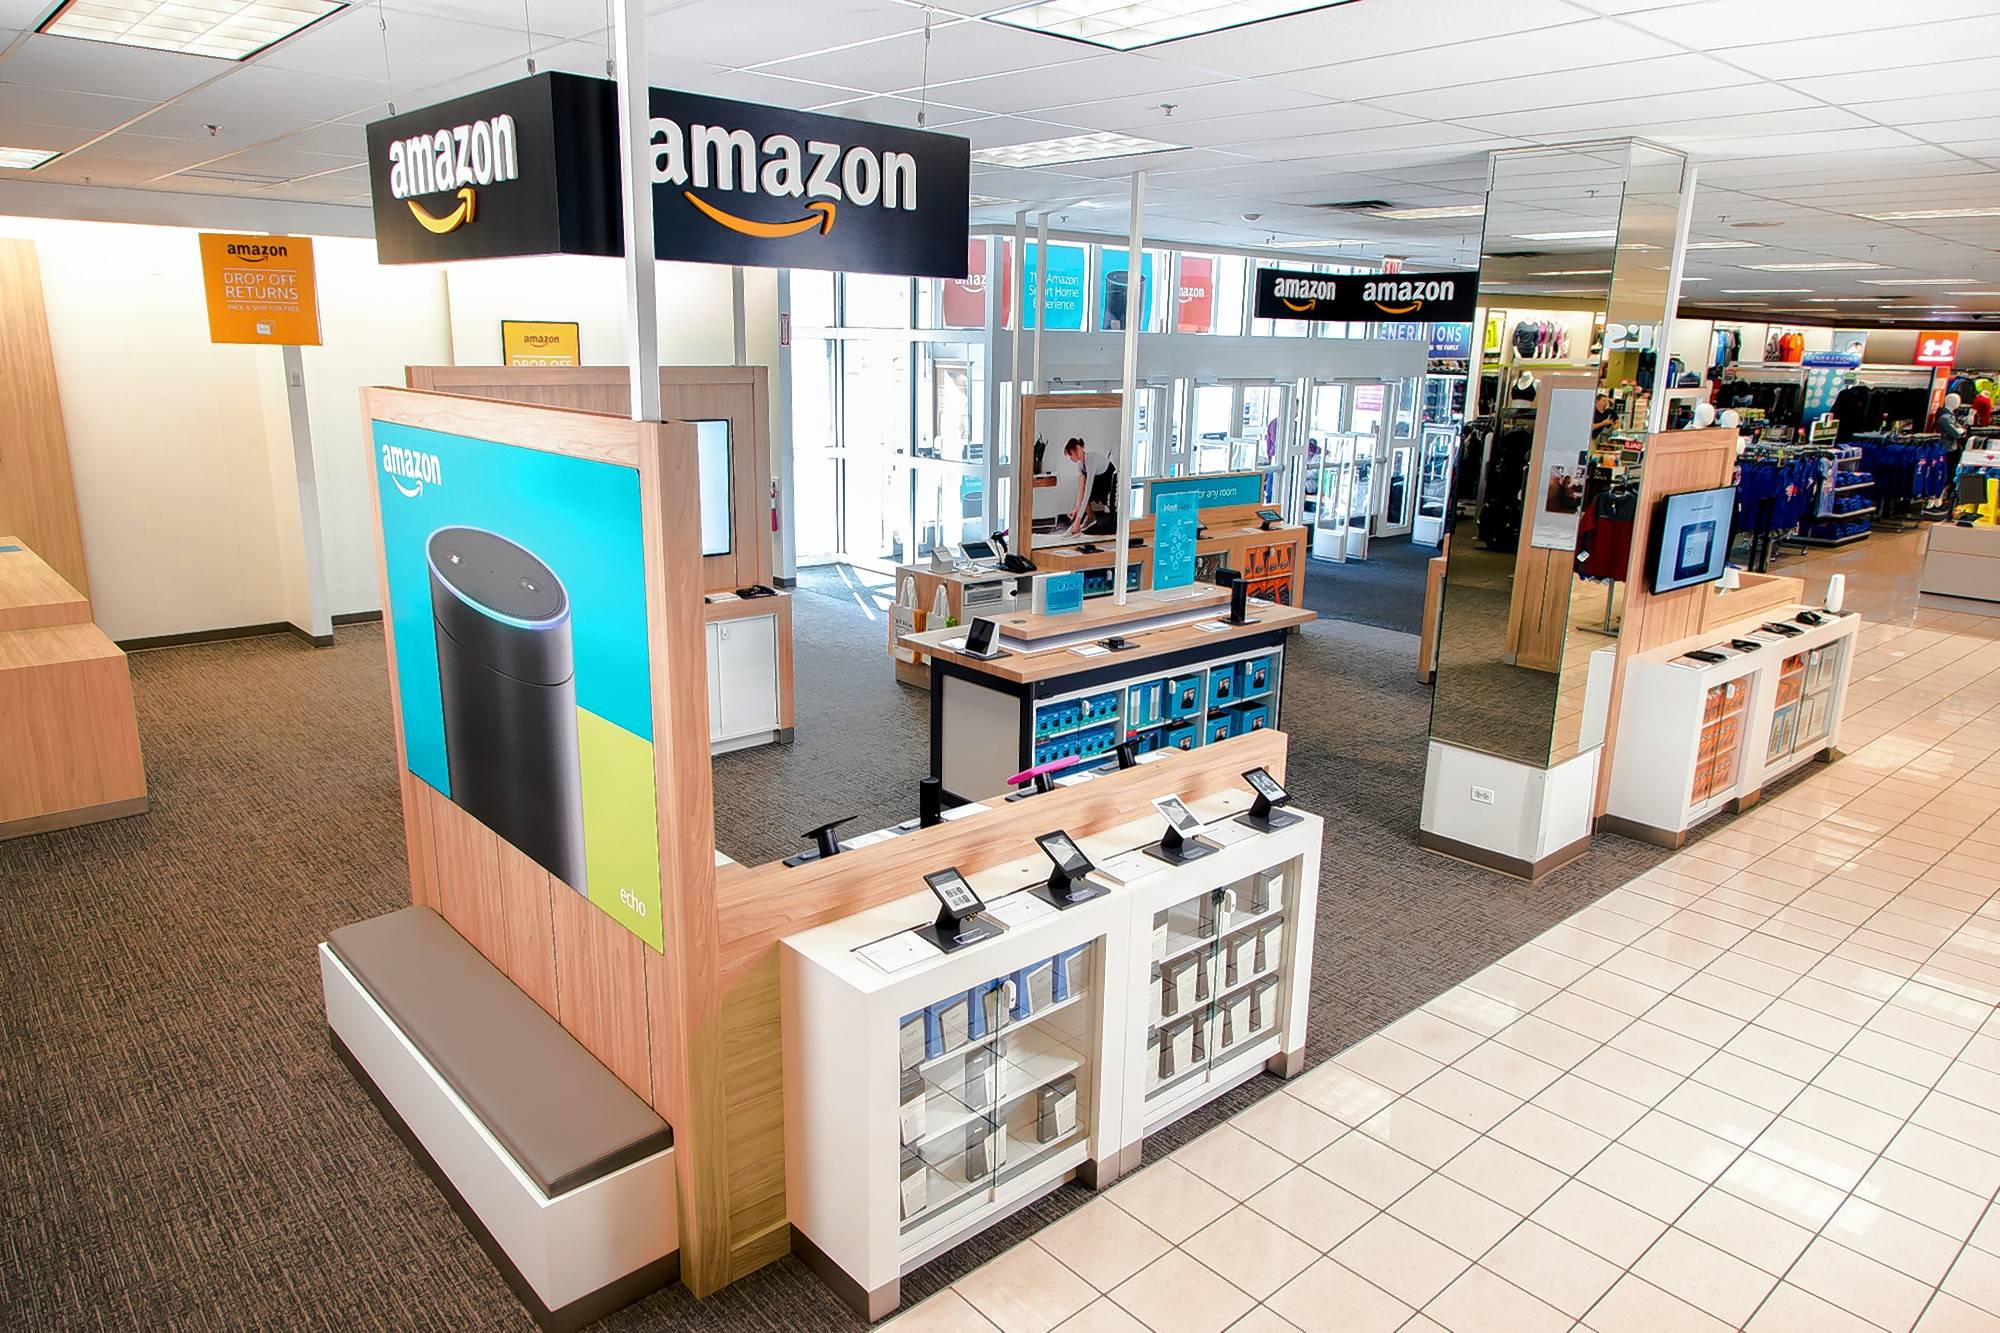 Kohl's launched Amazon return areas in a handful of stores, including Elmhurst and Tinley Park. They will look like the Kohl's Bucktown Store in Chicago.